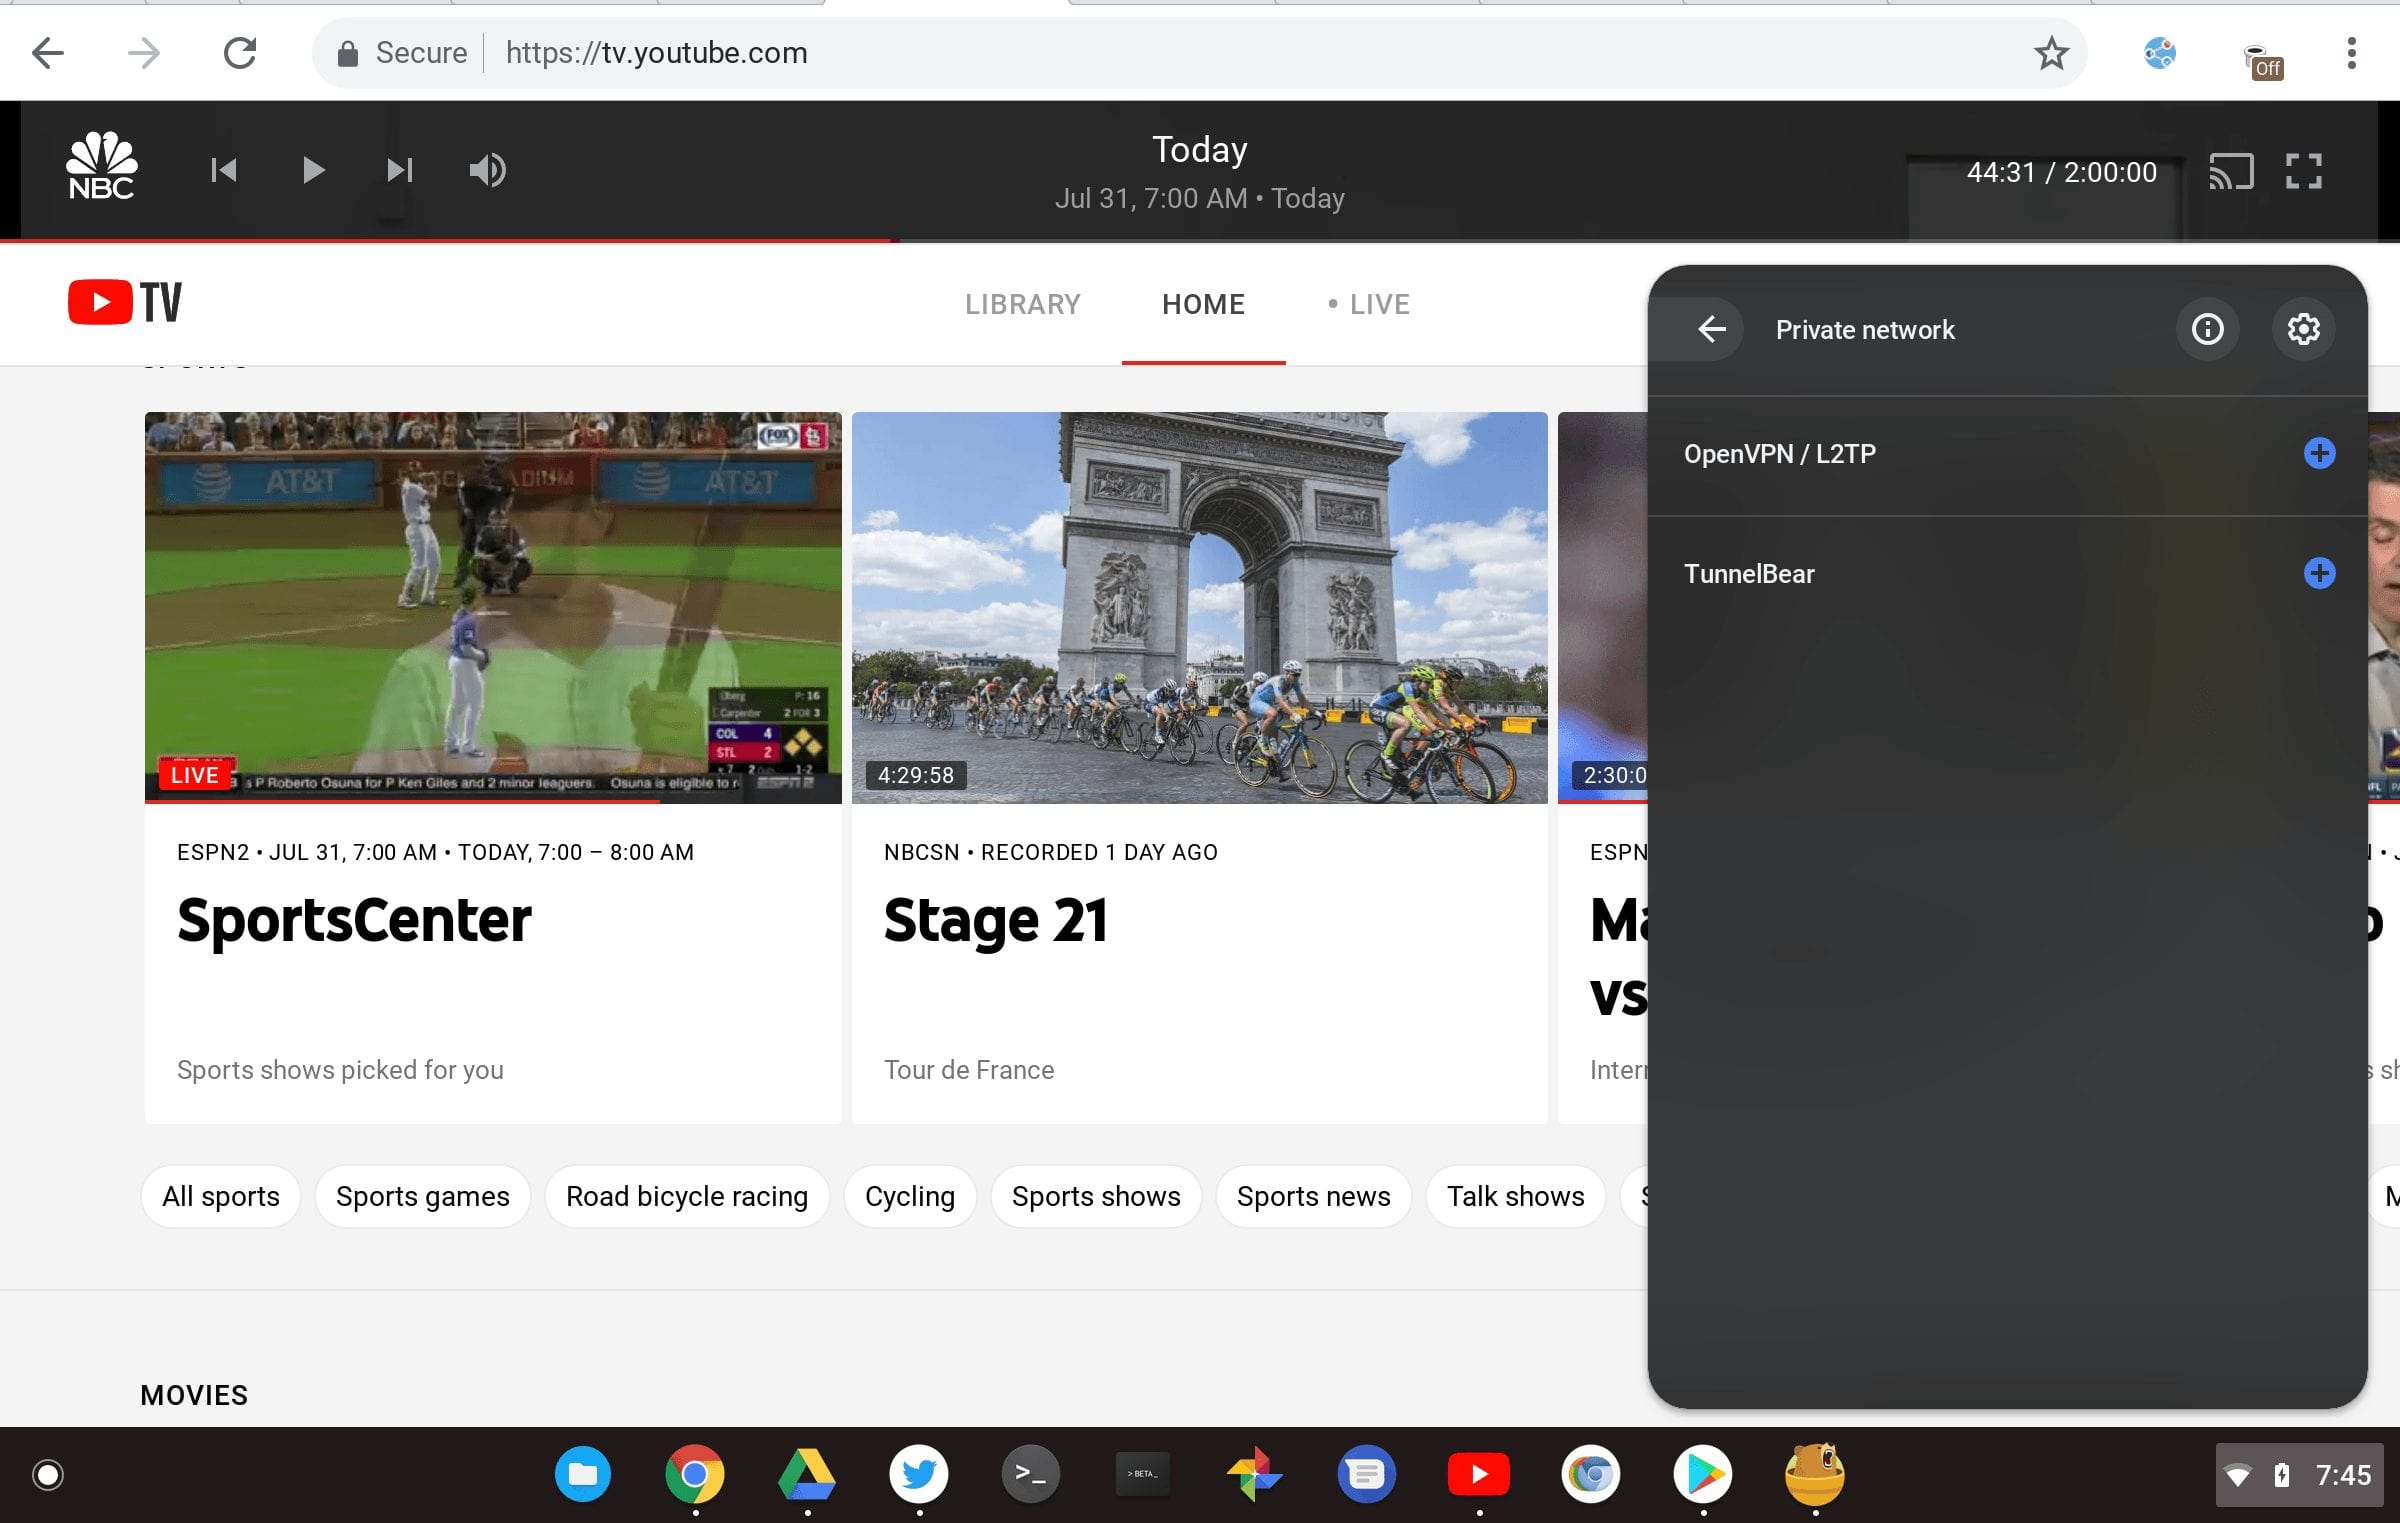 Chrome OS to bring Android VPN support for Linux apps on Chromebooks